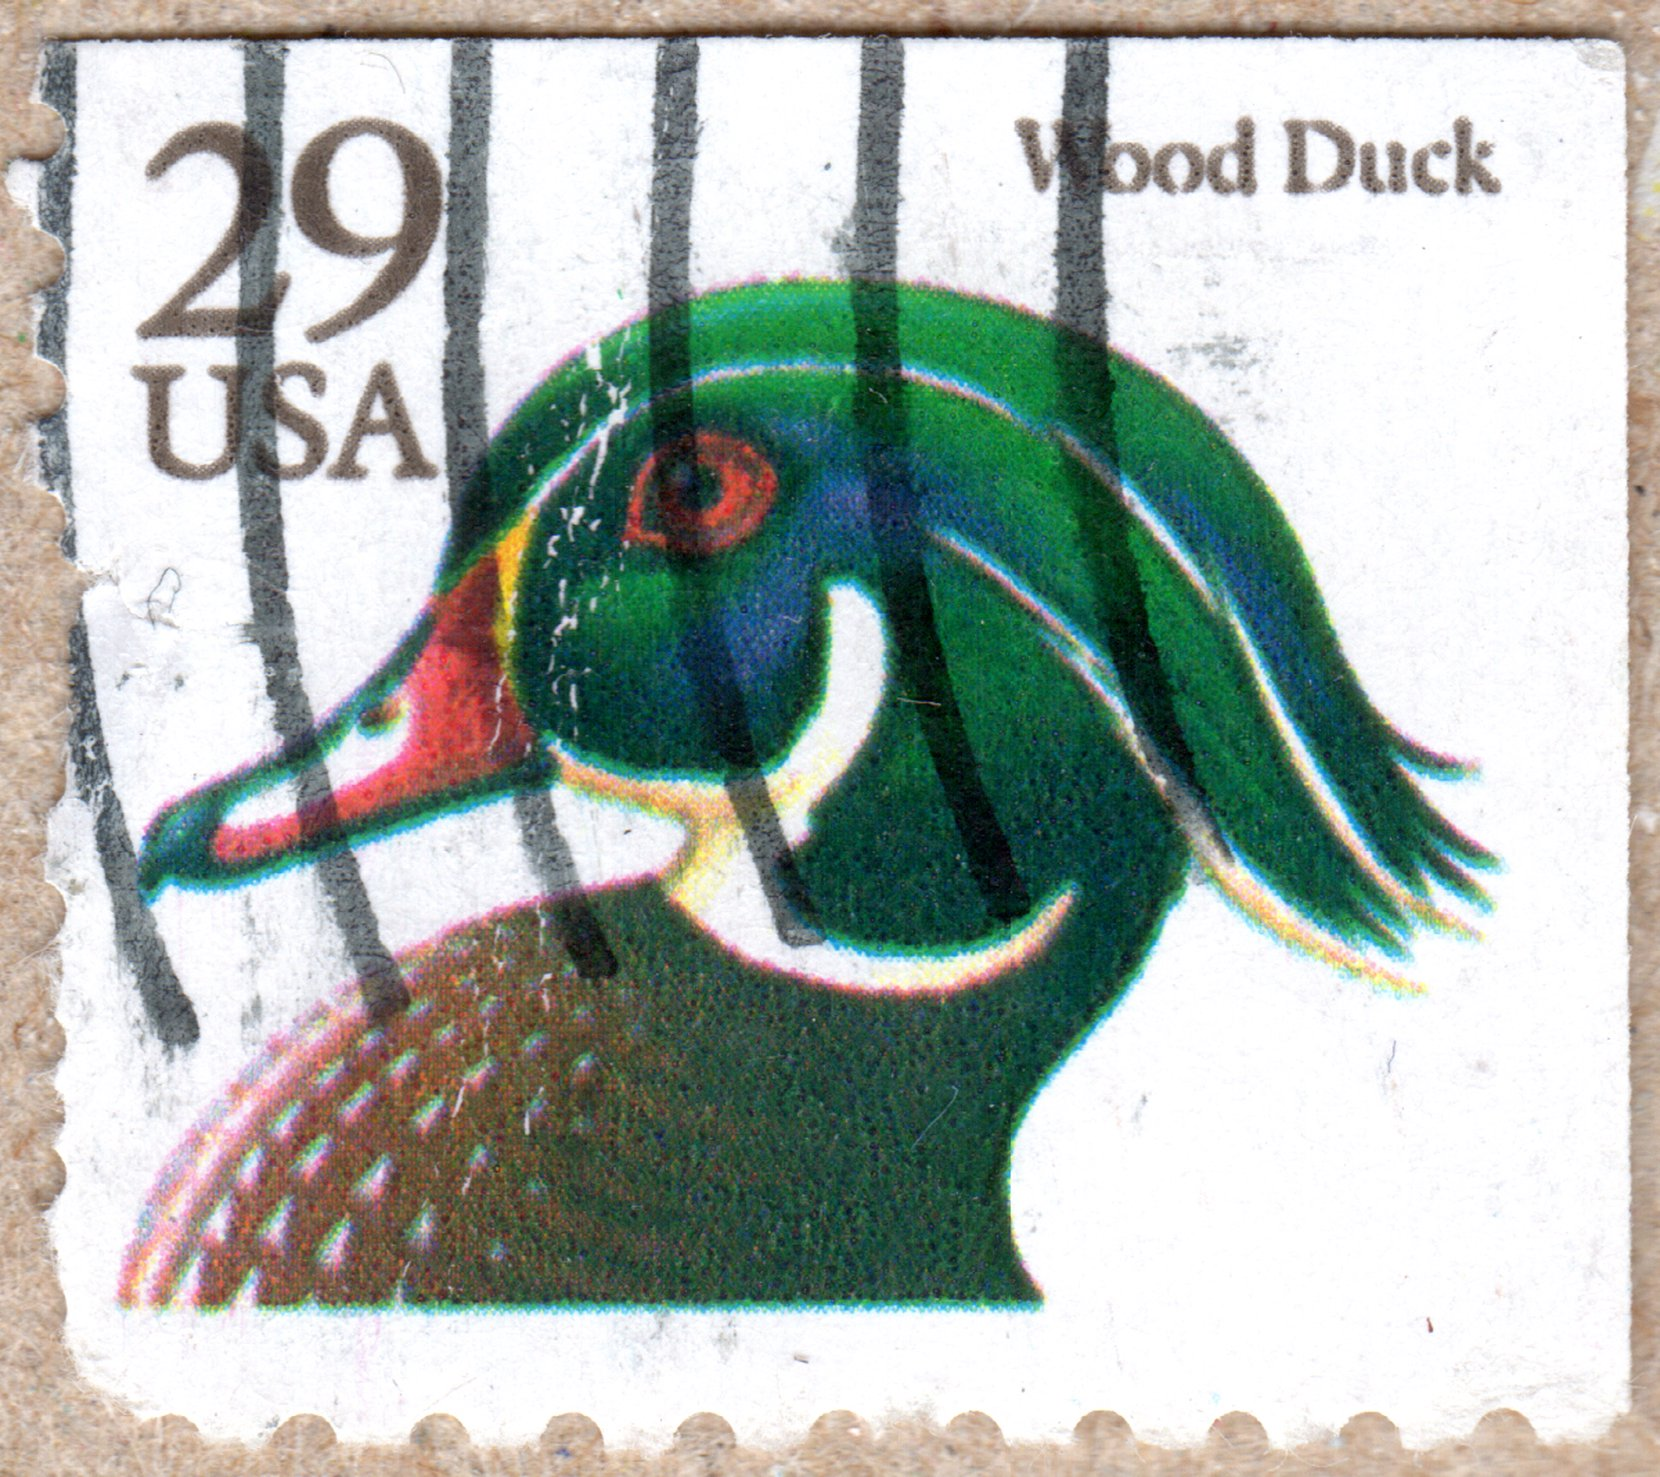 wood duck u.s. 29¢ stamp philately postage stamps